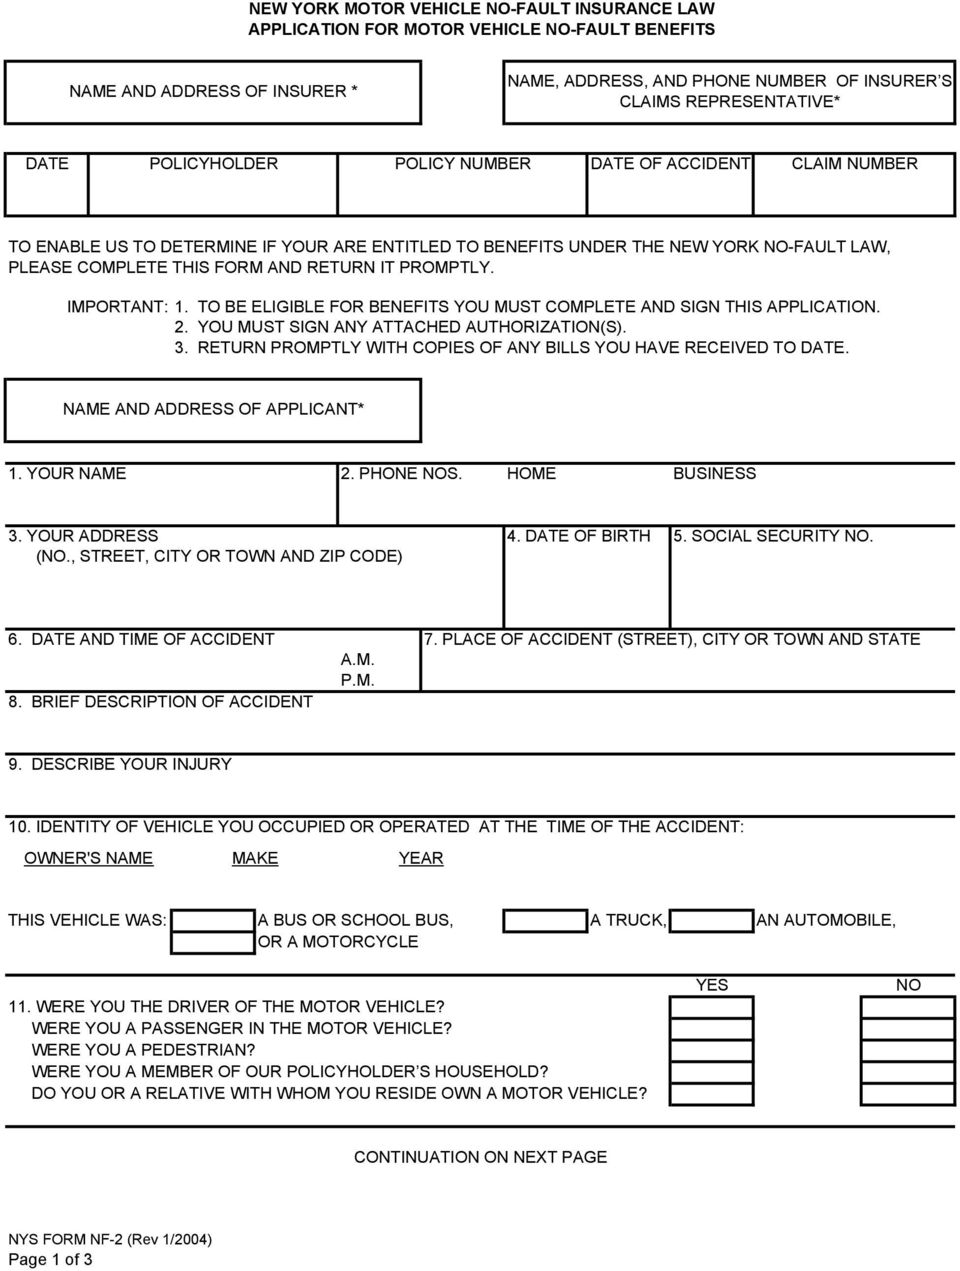 NEW YORK MOTOR VEHICLE NO-FAULT INSURANCE LAW COVER LETTER